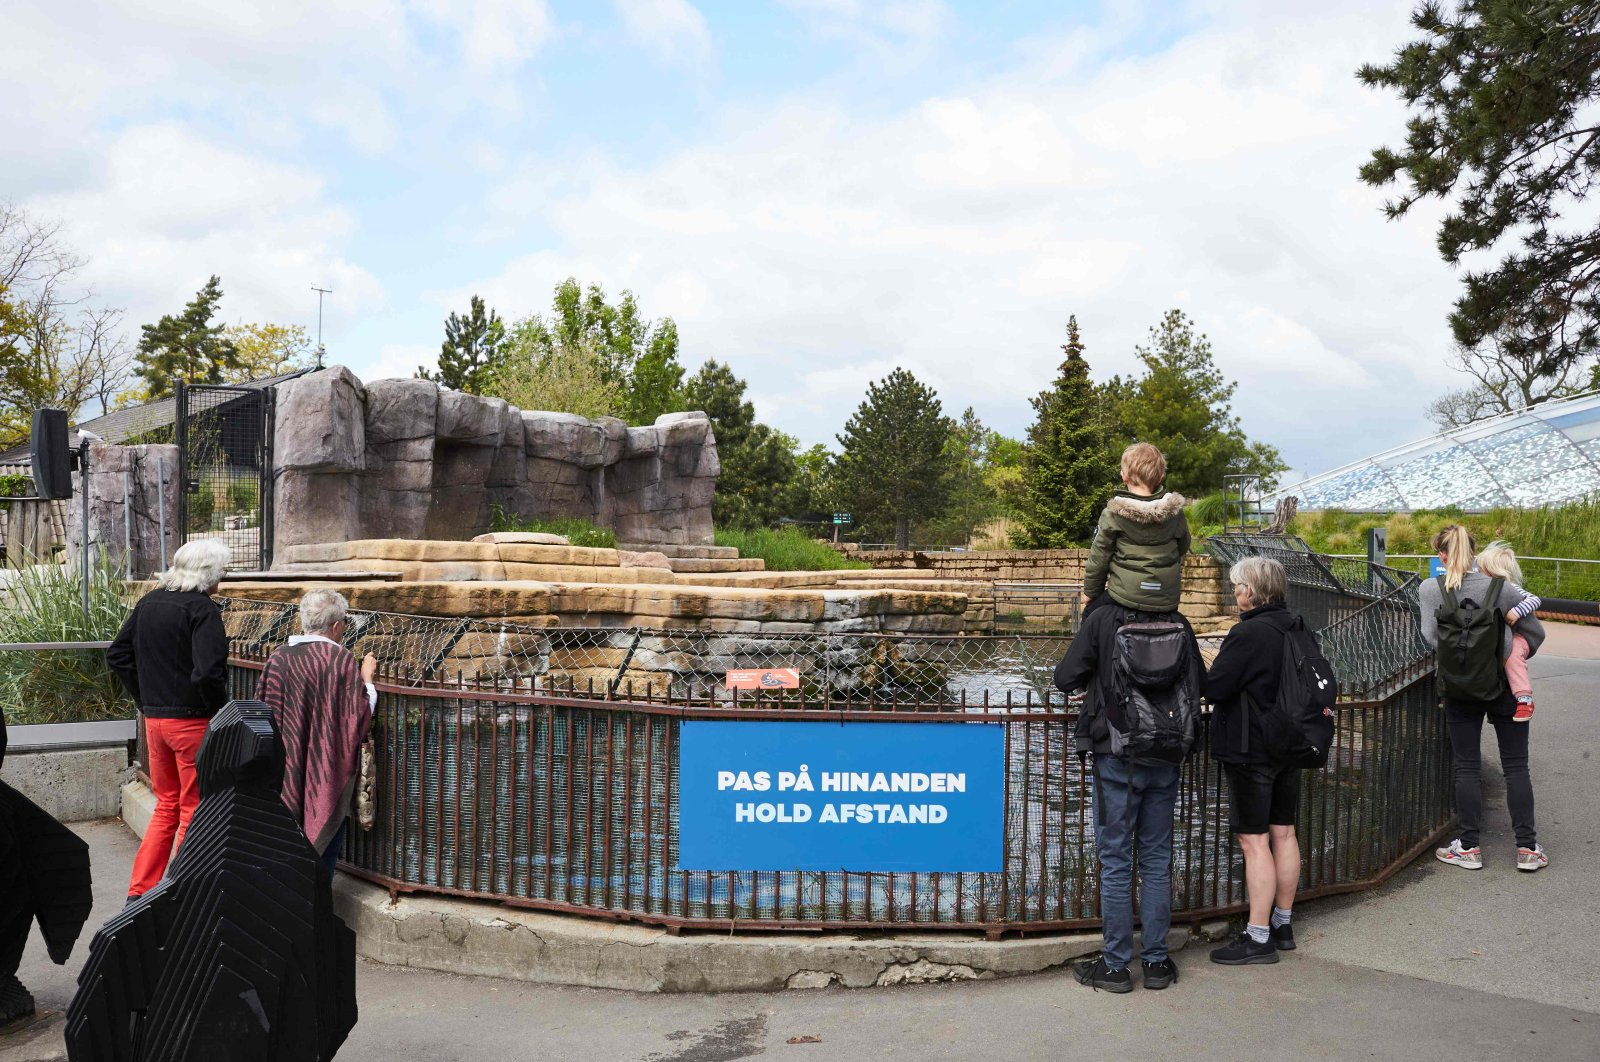 People observe the social distancing rules as they visit the Copenhagen Zoo, which partially reopened following its closure due to the coronavirus pandemic, May 25, 2020 . (AFP Photo)